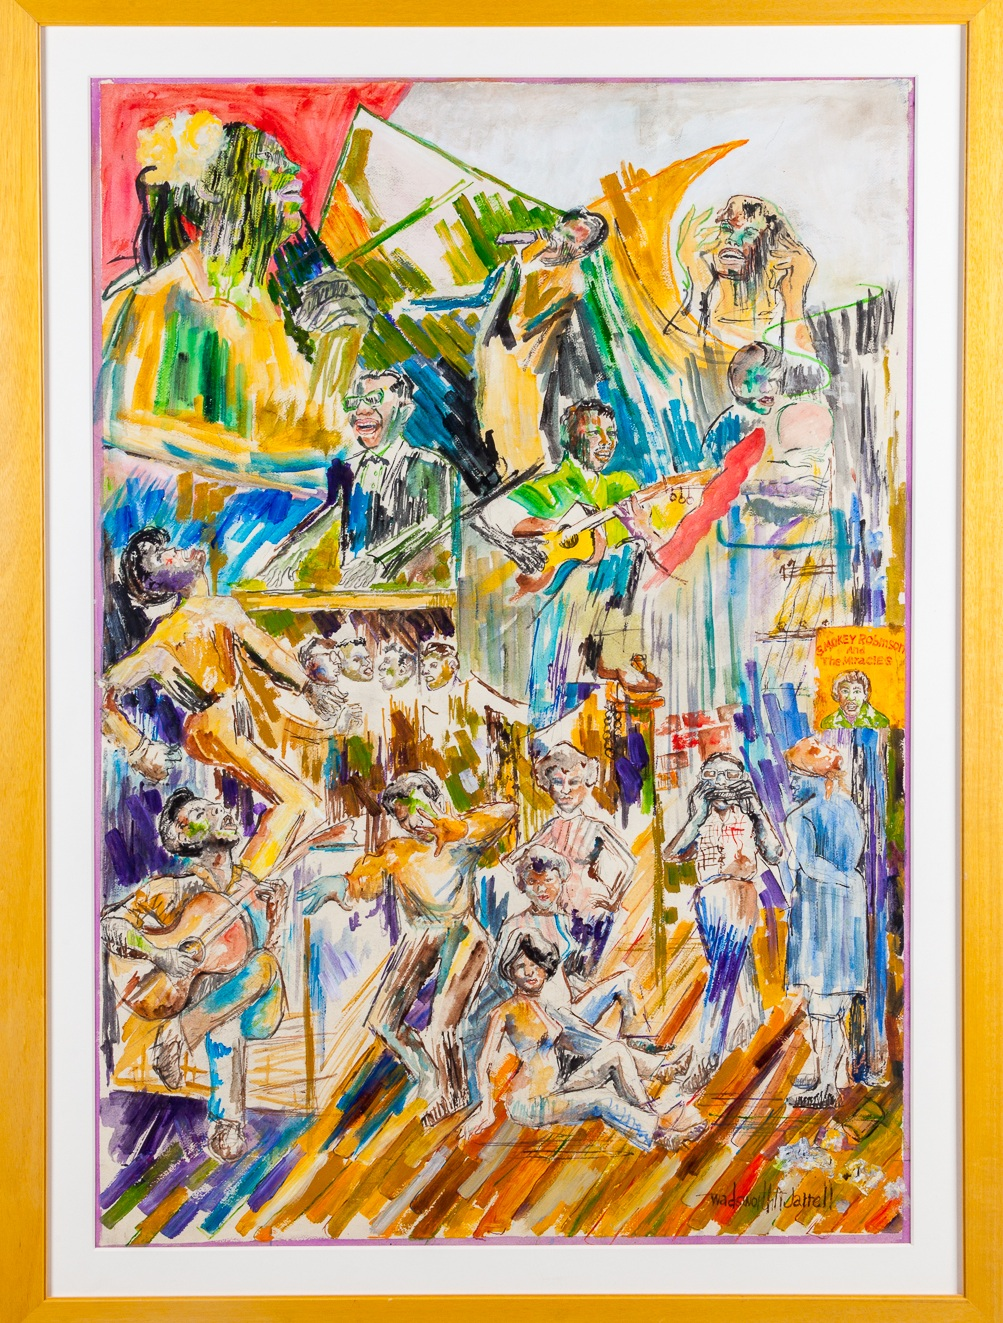 Wadsworth Jarrell, Study for Wall of Respect, 1967, Gouache, 44 x 30 inches